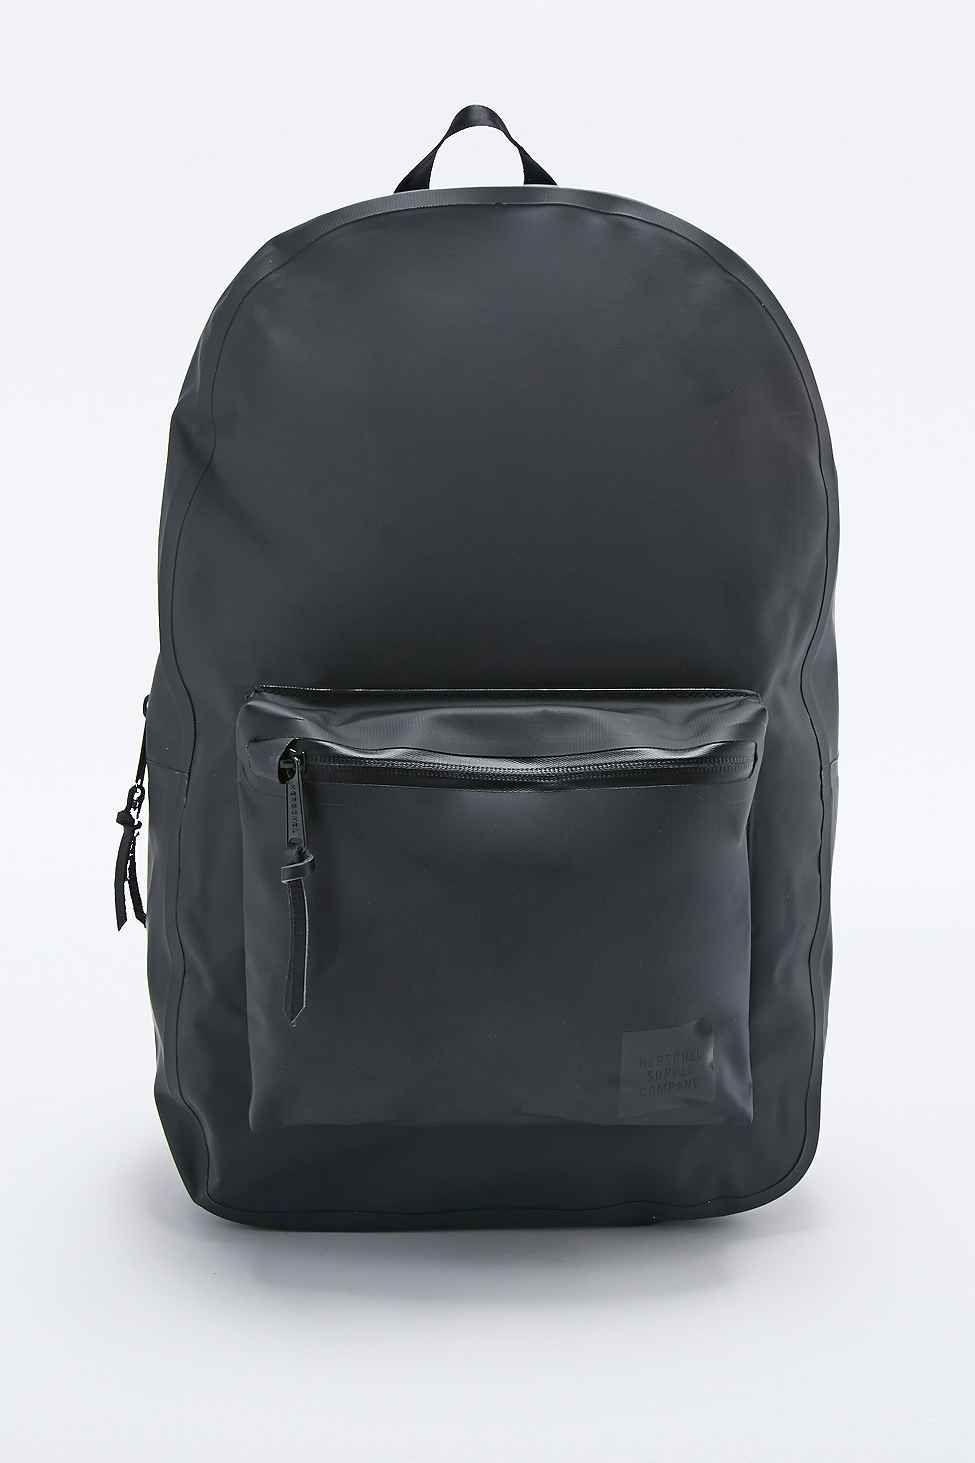 07ef7e987a8 Herschel Supply co. Settlement Studio Tarpaulin Backpack in Black ...